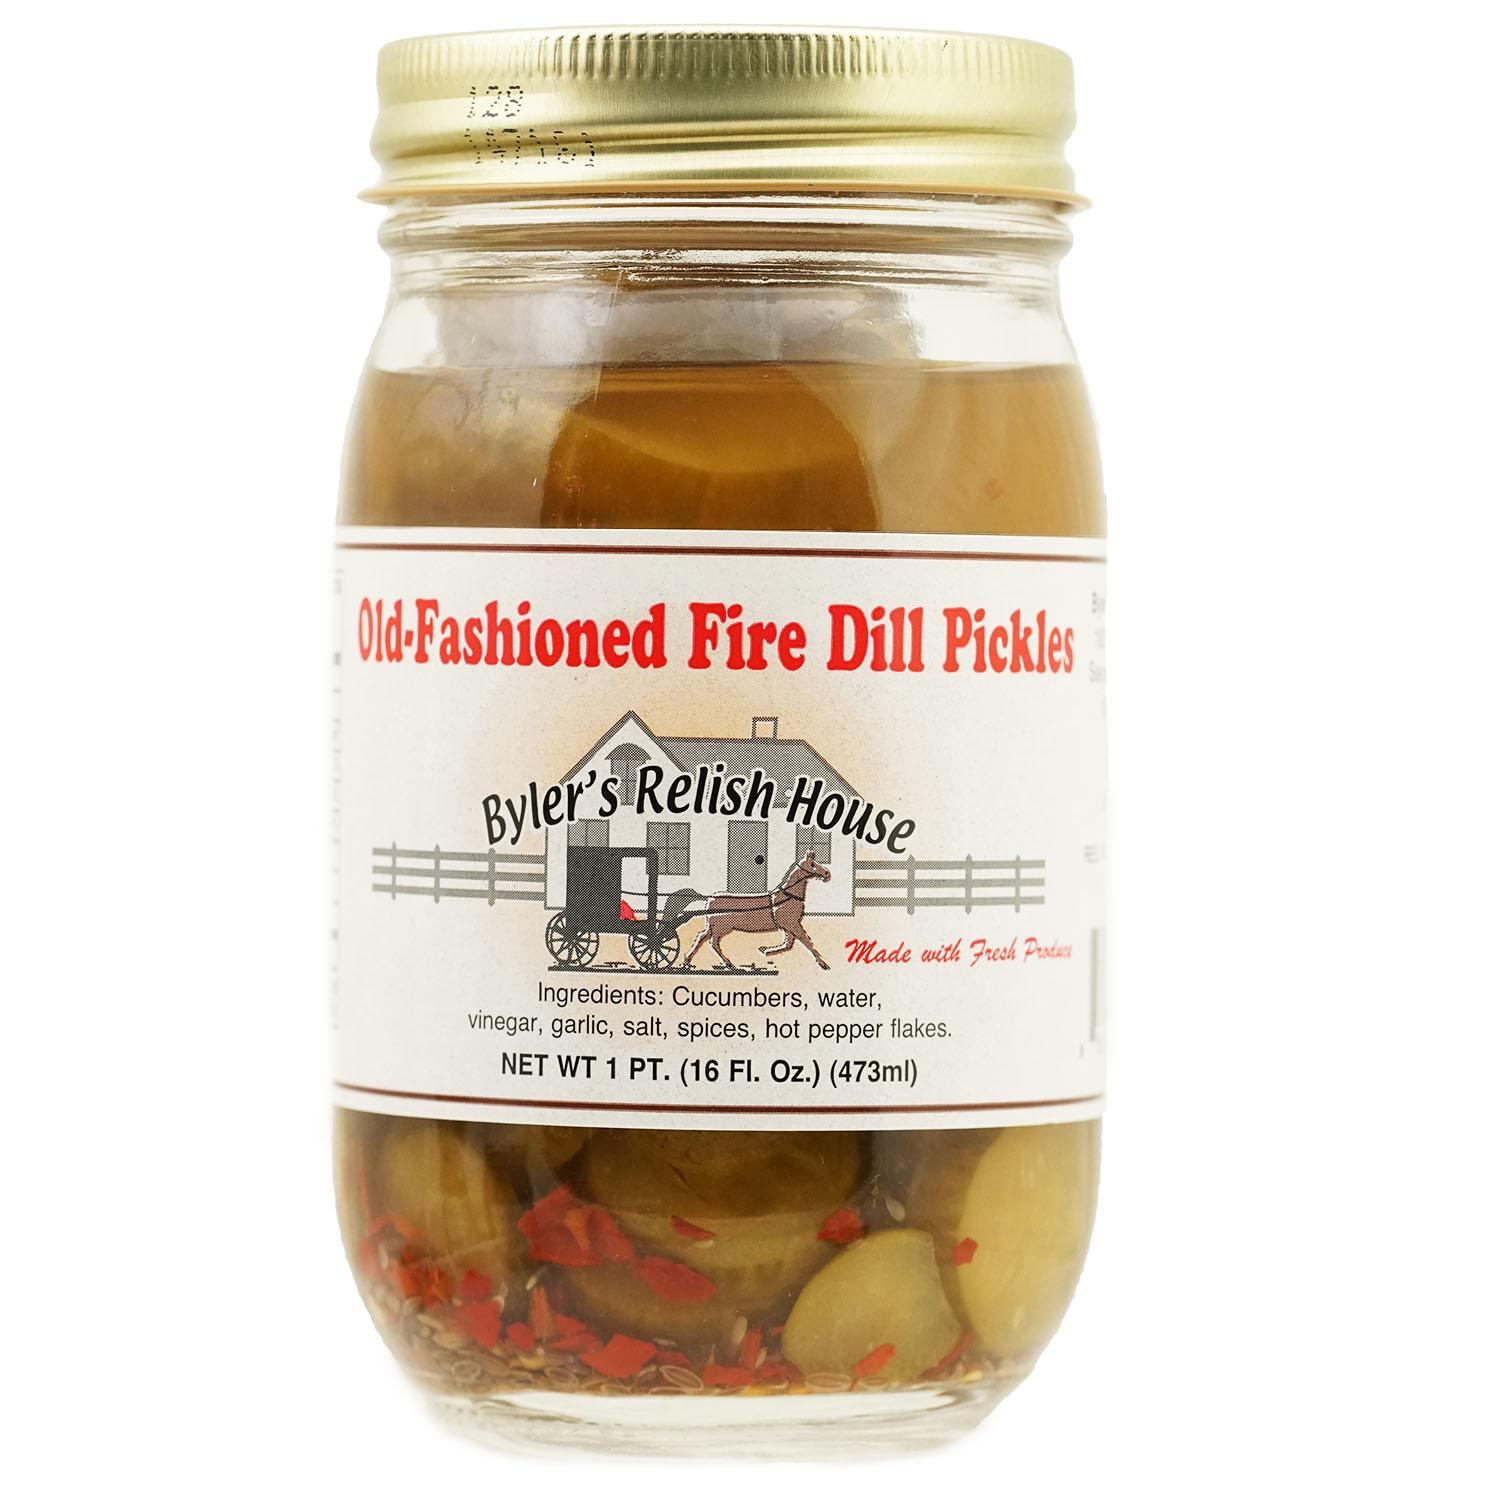 Byler's Relish House Homemade Old-Fashioned Fire Dill Pickles 16 oz. by Byler's Relish House